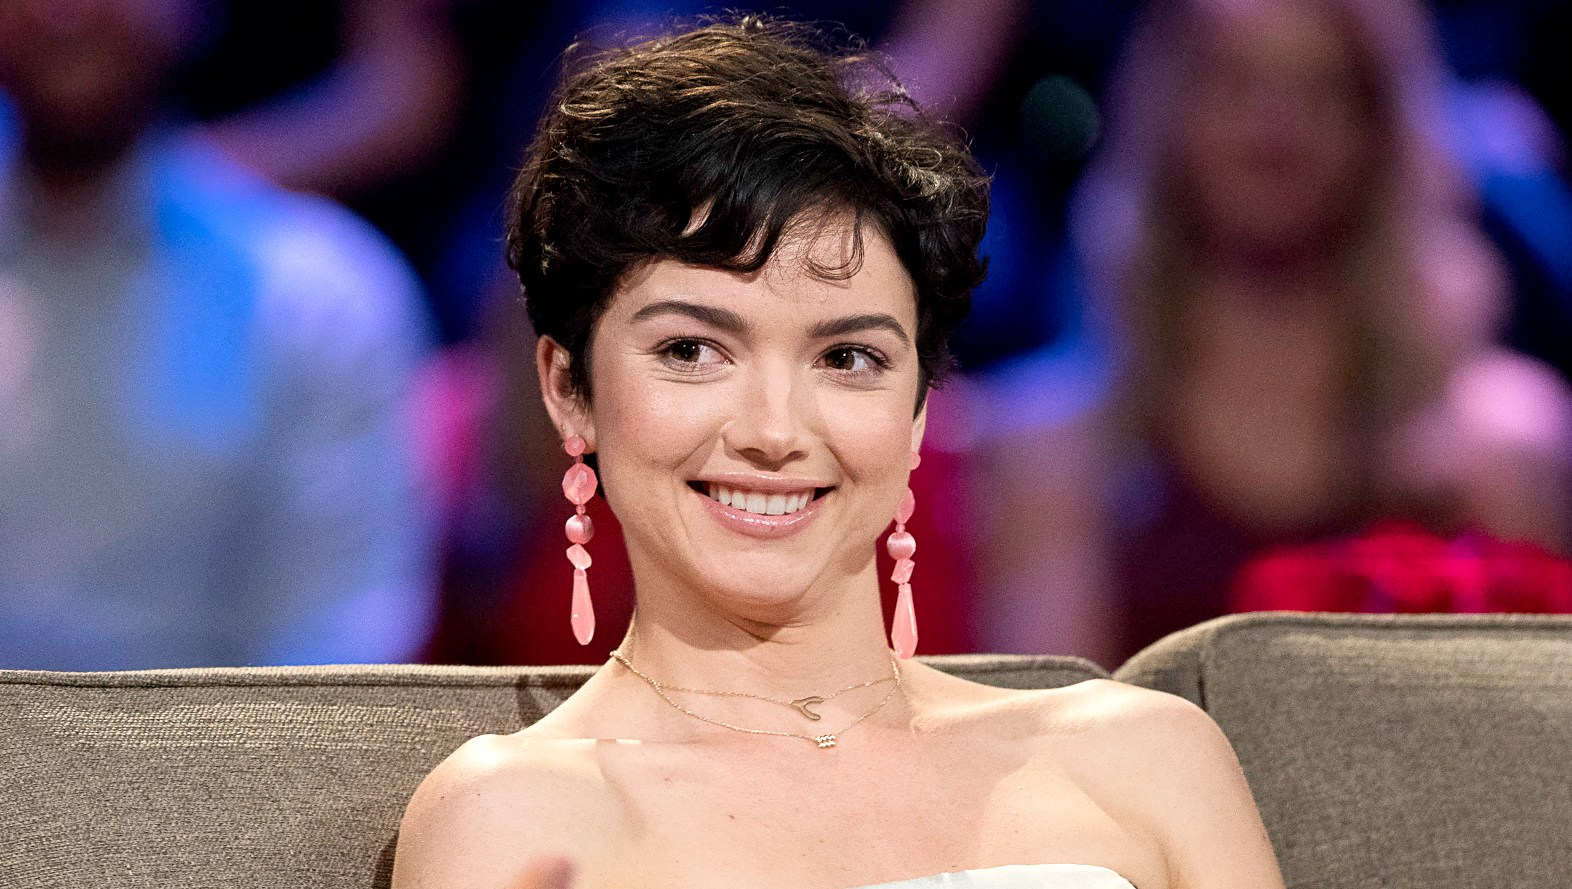 Bekah-Martinez-face-changed-pregnancy